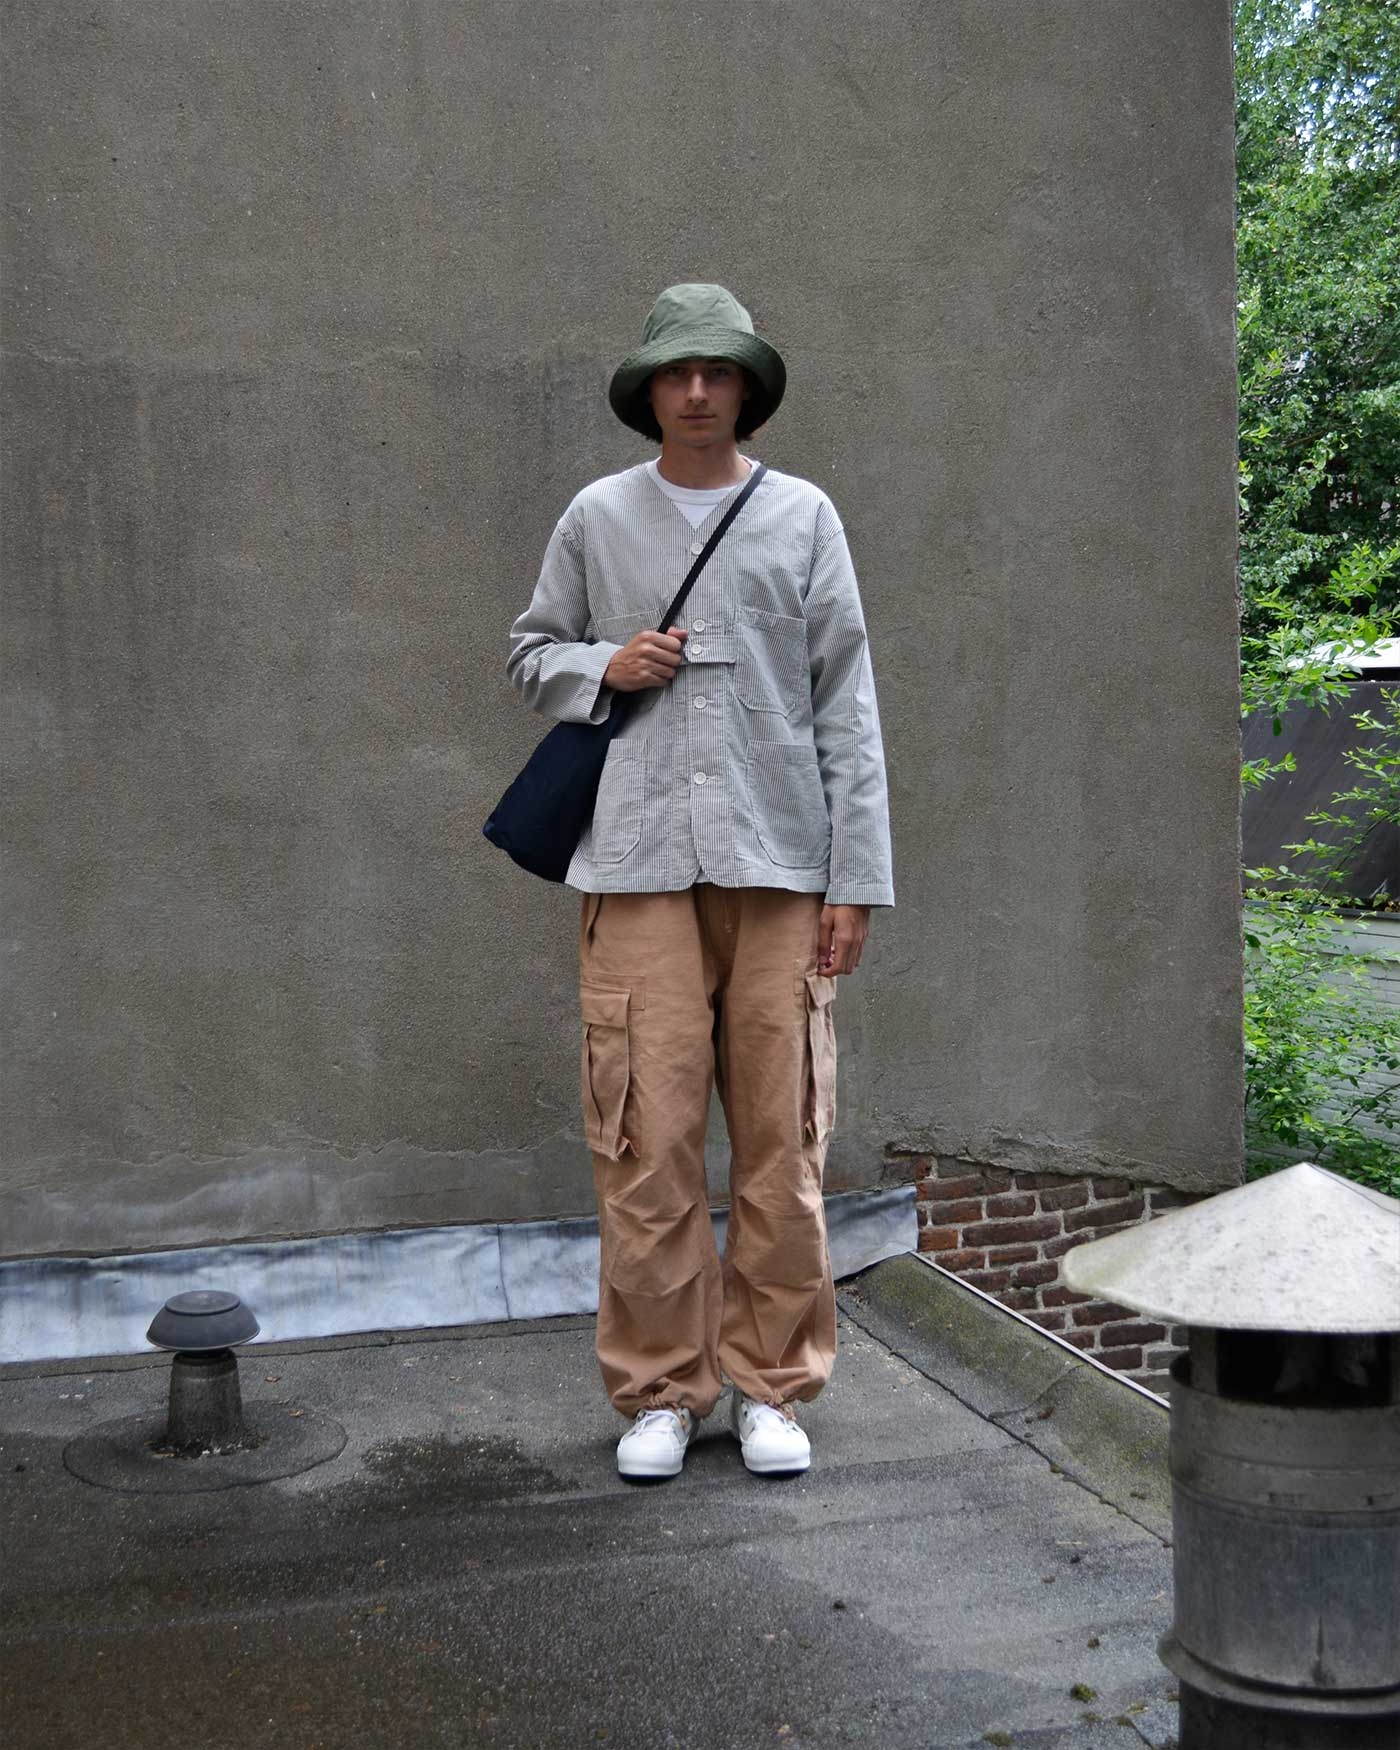 Noe wears a striped Engineered garments shirt jacket, olive bucket hat, Story MFG peace pants and Needles Ghillie sneakers